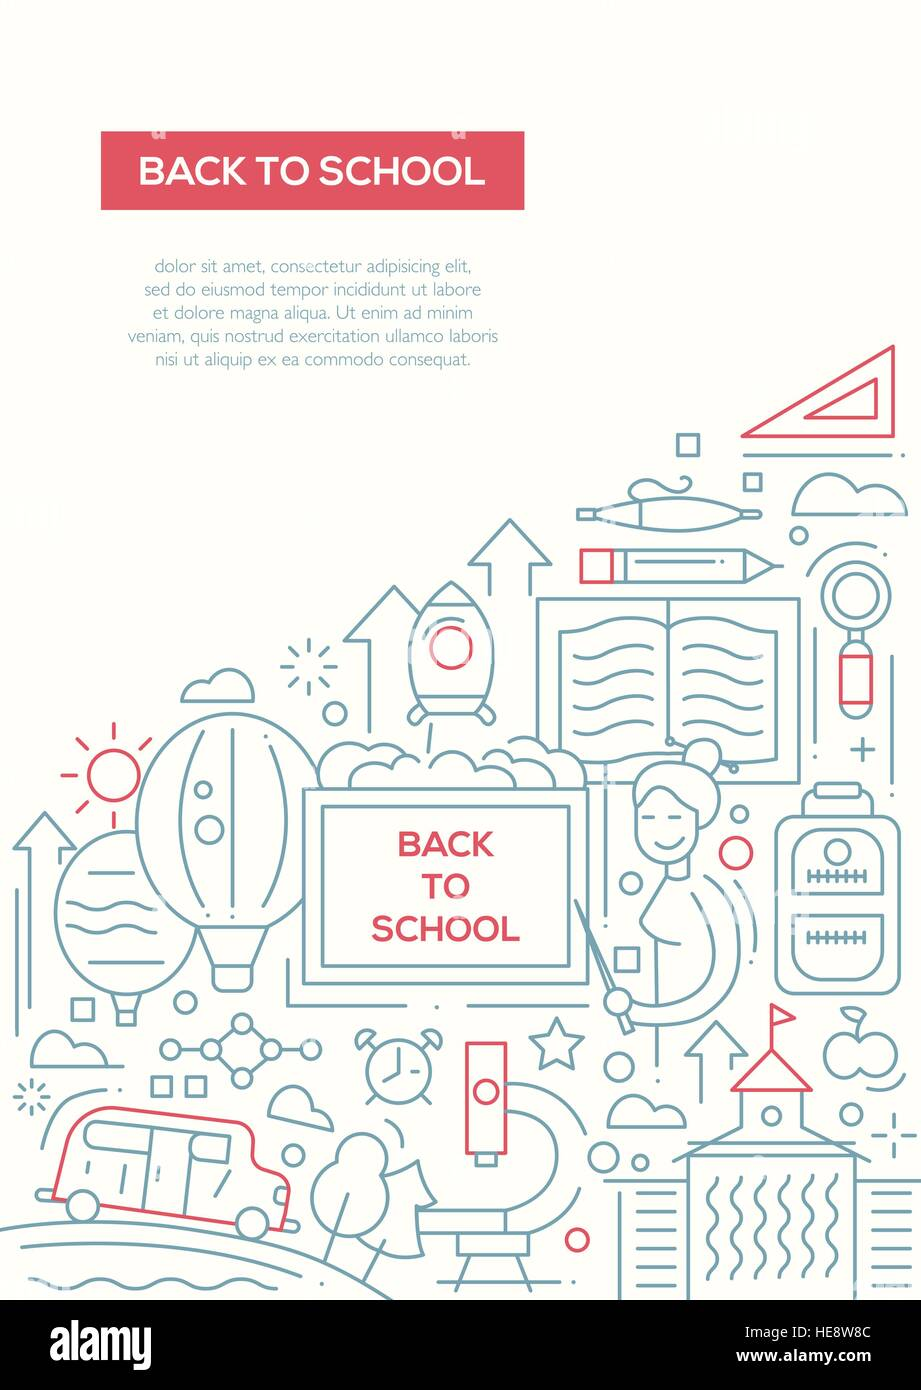 Back To School Line Design Brochure Poster Template A4 Stock